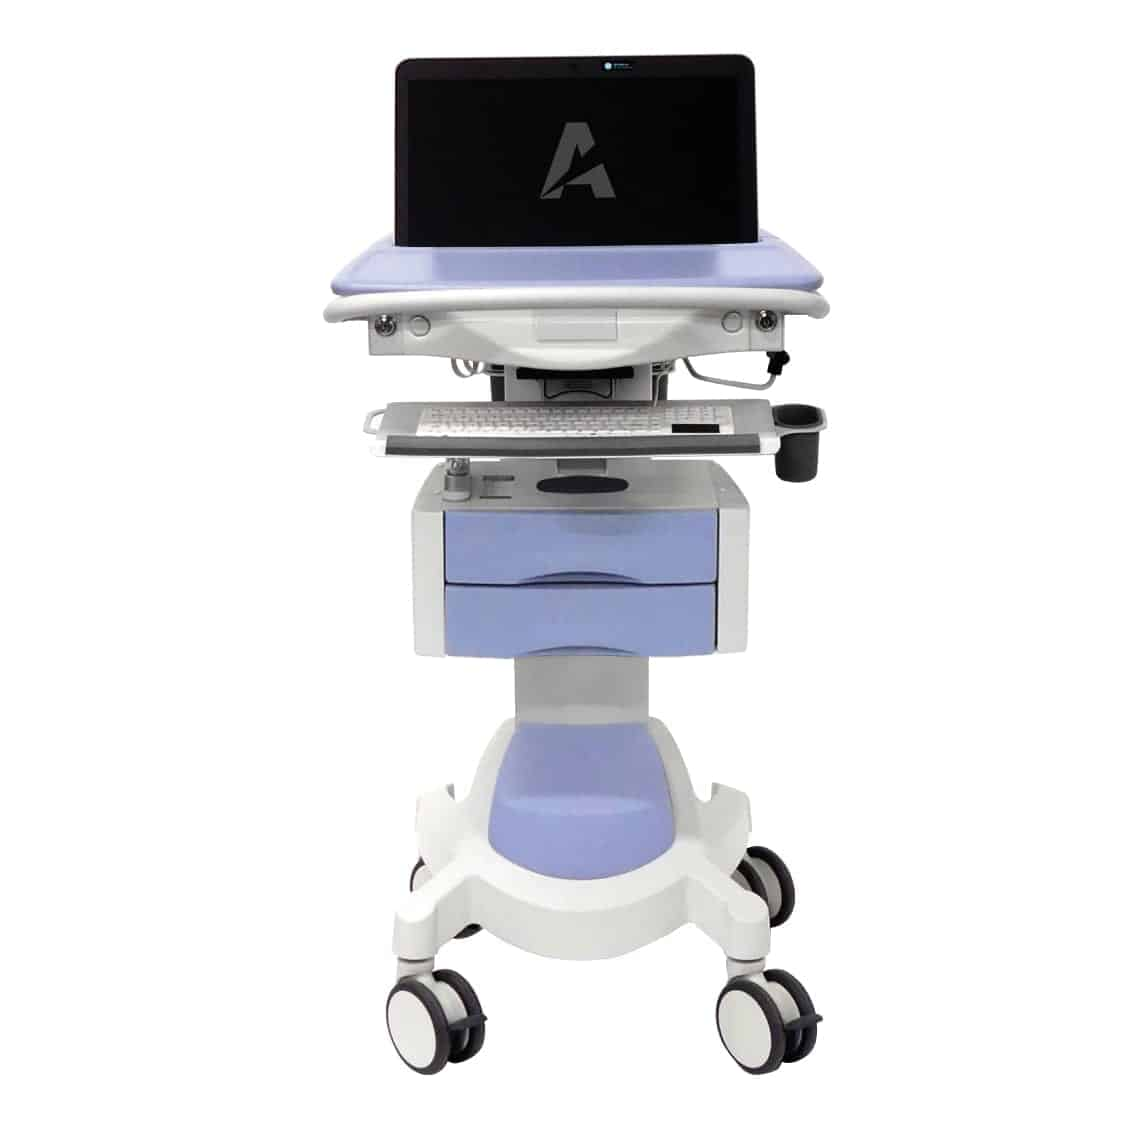 Medicow Laptop Workstation Agile Medical